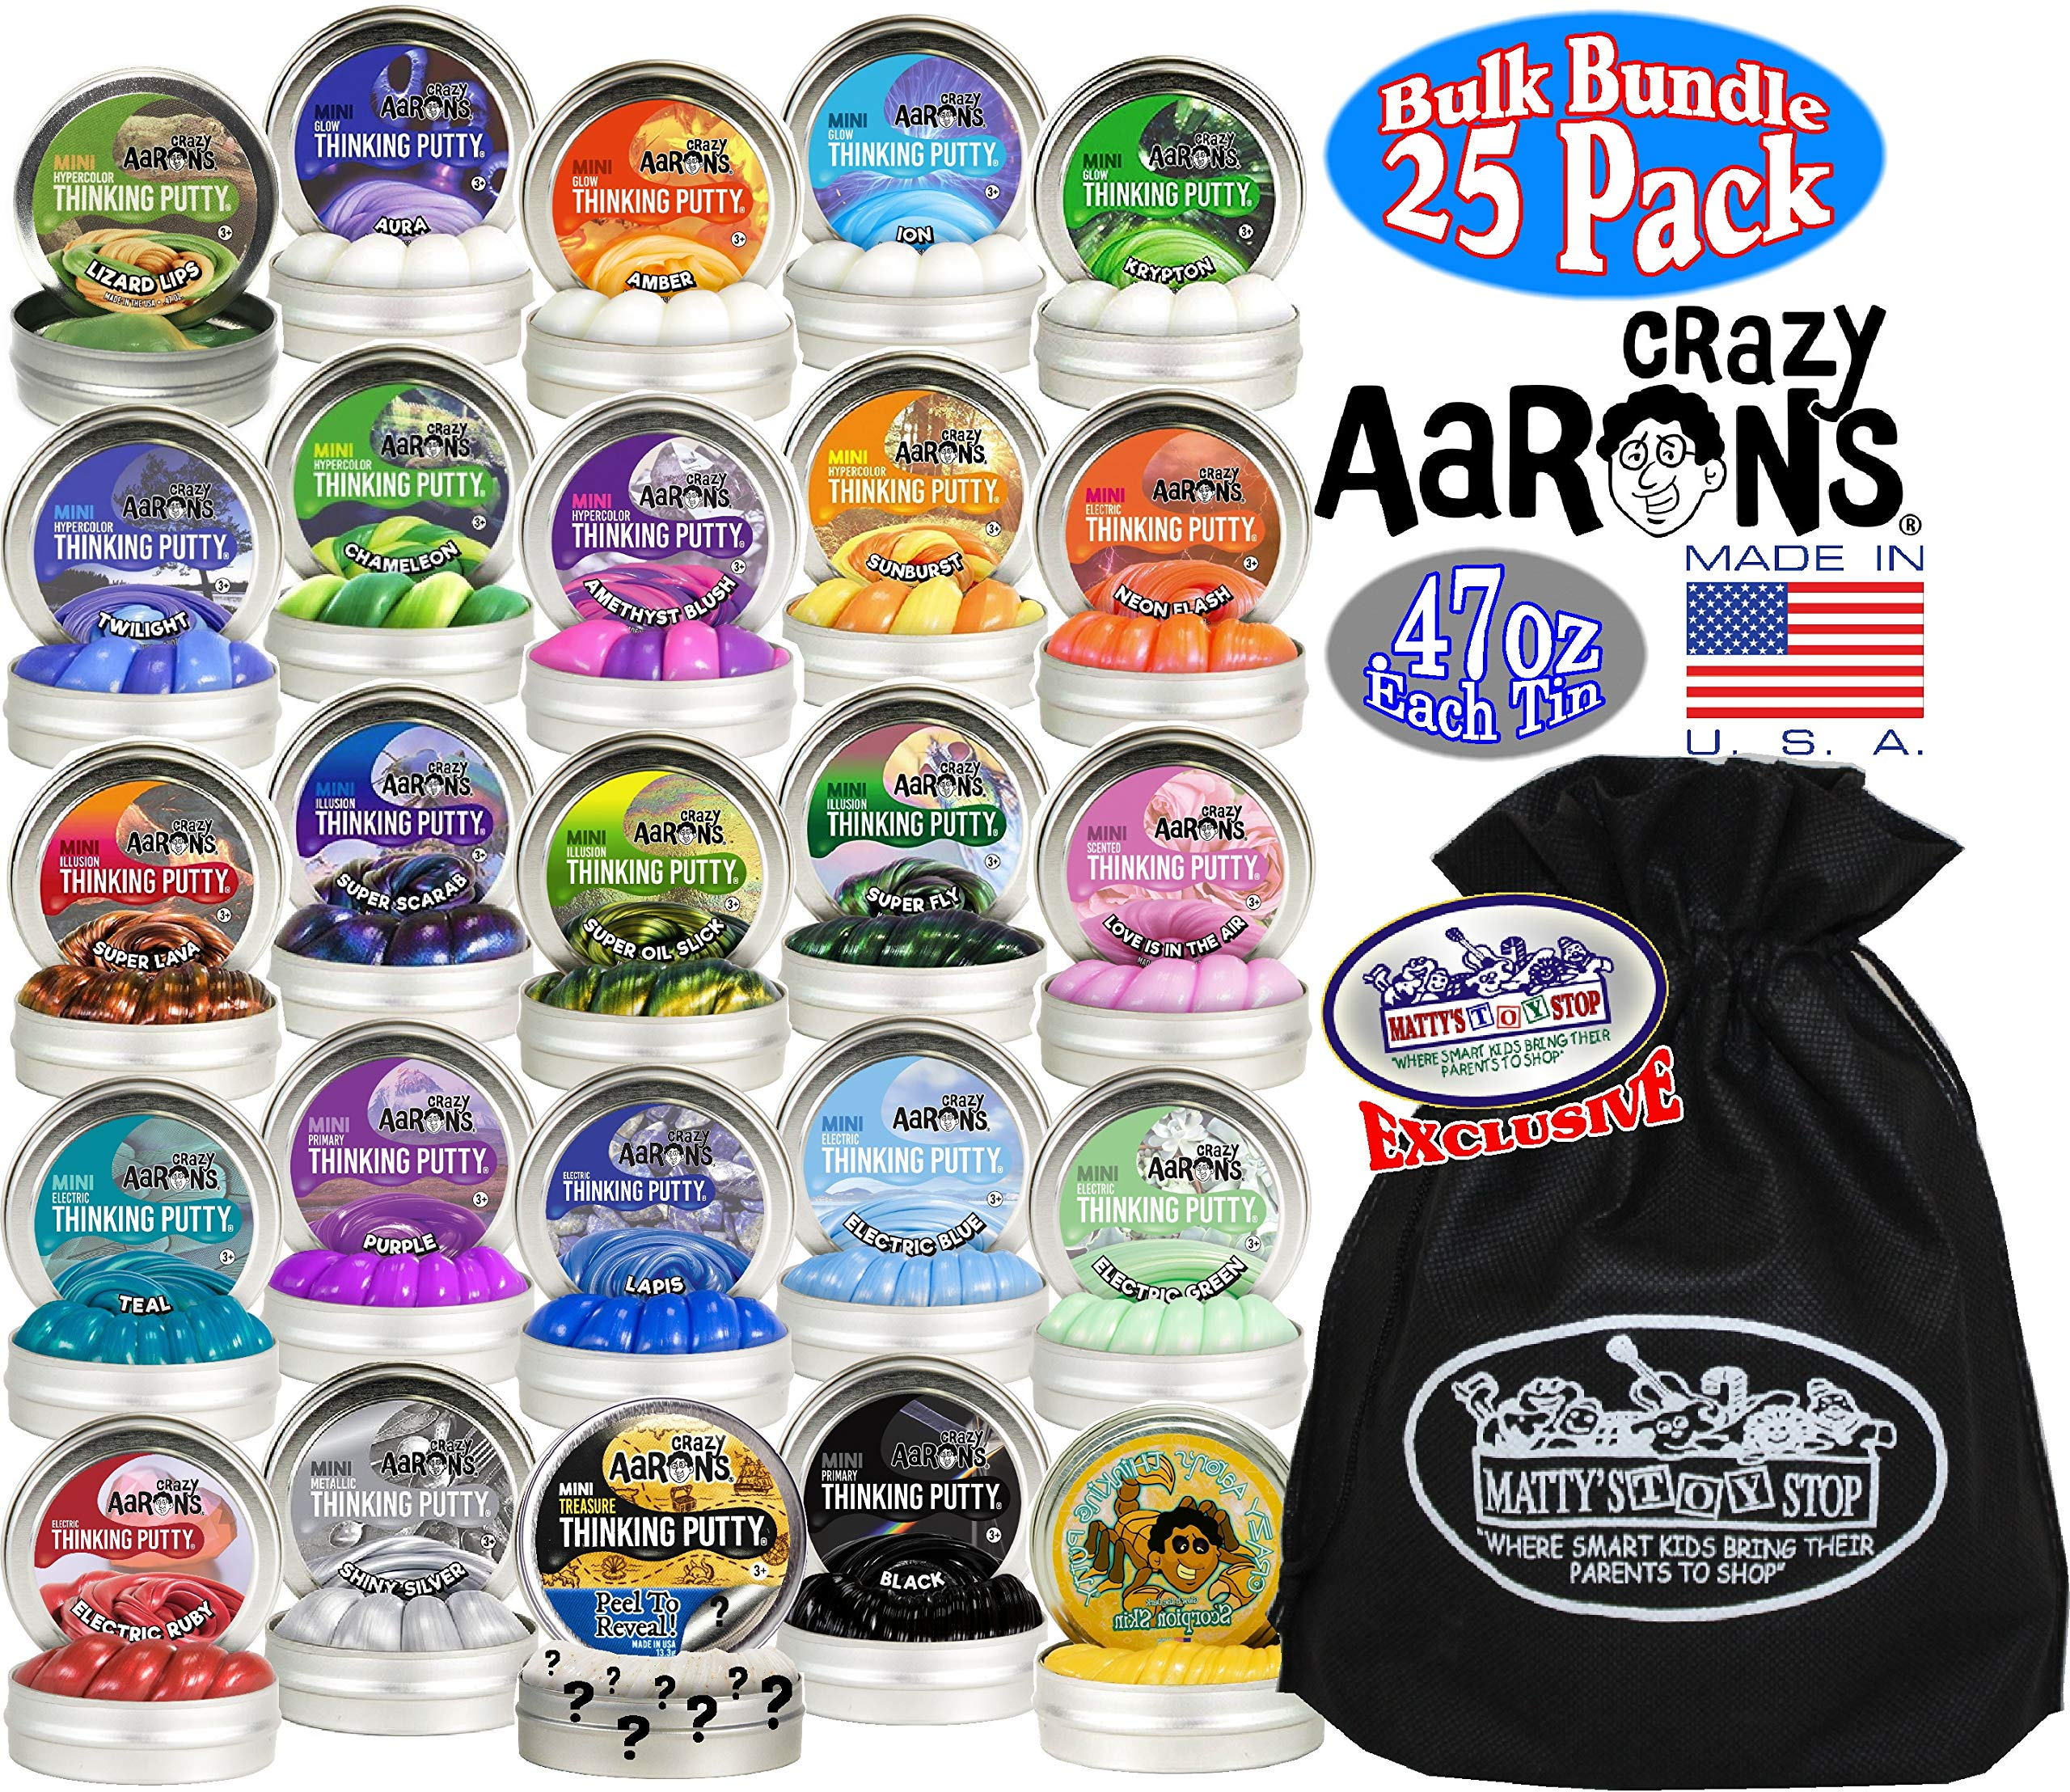 Crazy Aaron's Thinking Putty Mini Tins Deluxe Gift Set Bundle Featuring Glow, Hypercolor, Super Illusions, Scented, Electric, Primary, Metallic & Exclusive Matty's Toy Stop Bag - 25 Pack (.47 oz each) by Crazy Aaron's